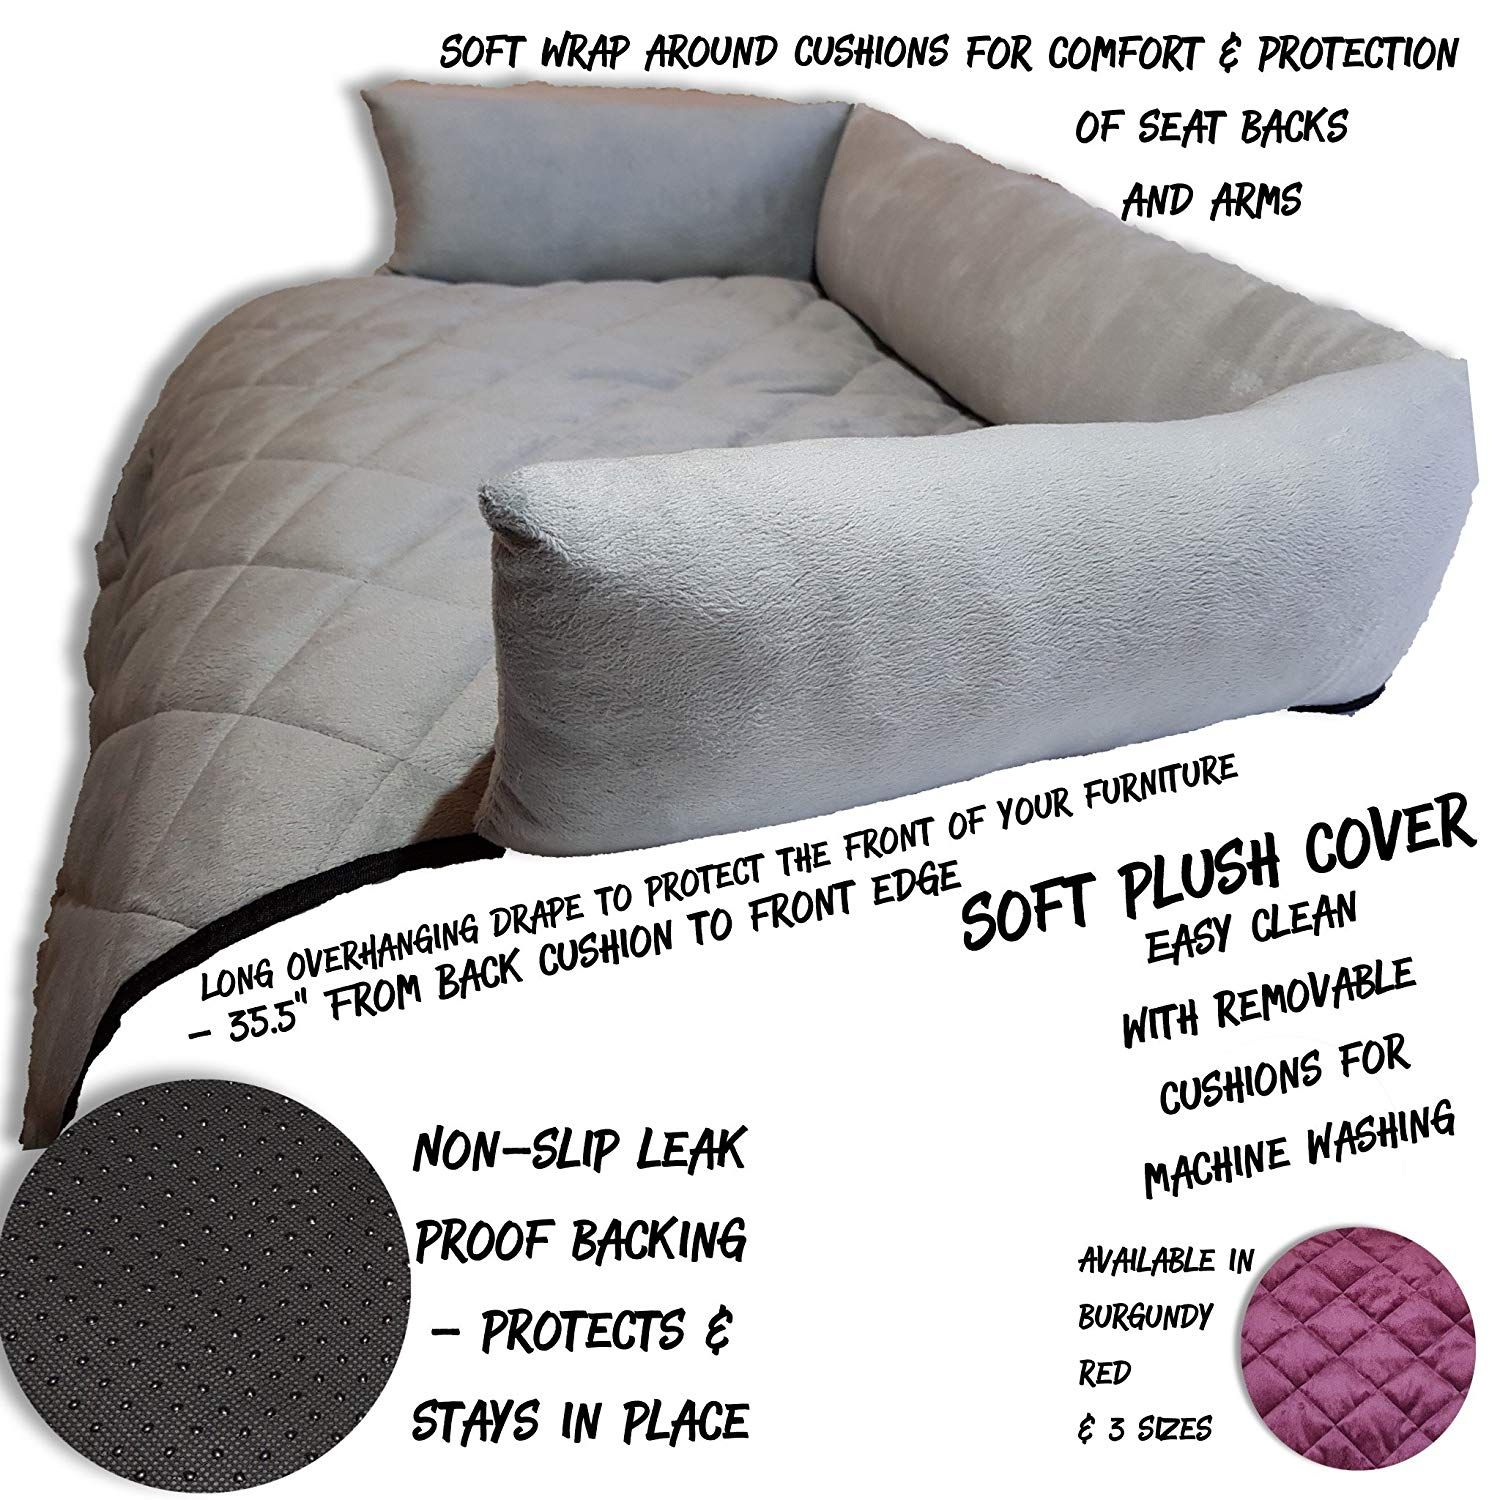 Waterproof Quilted Sofa Covers For Dogs Pets Kids Anti Slip Couch